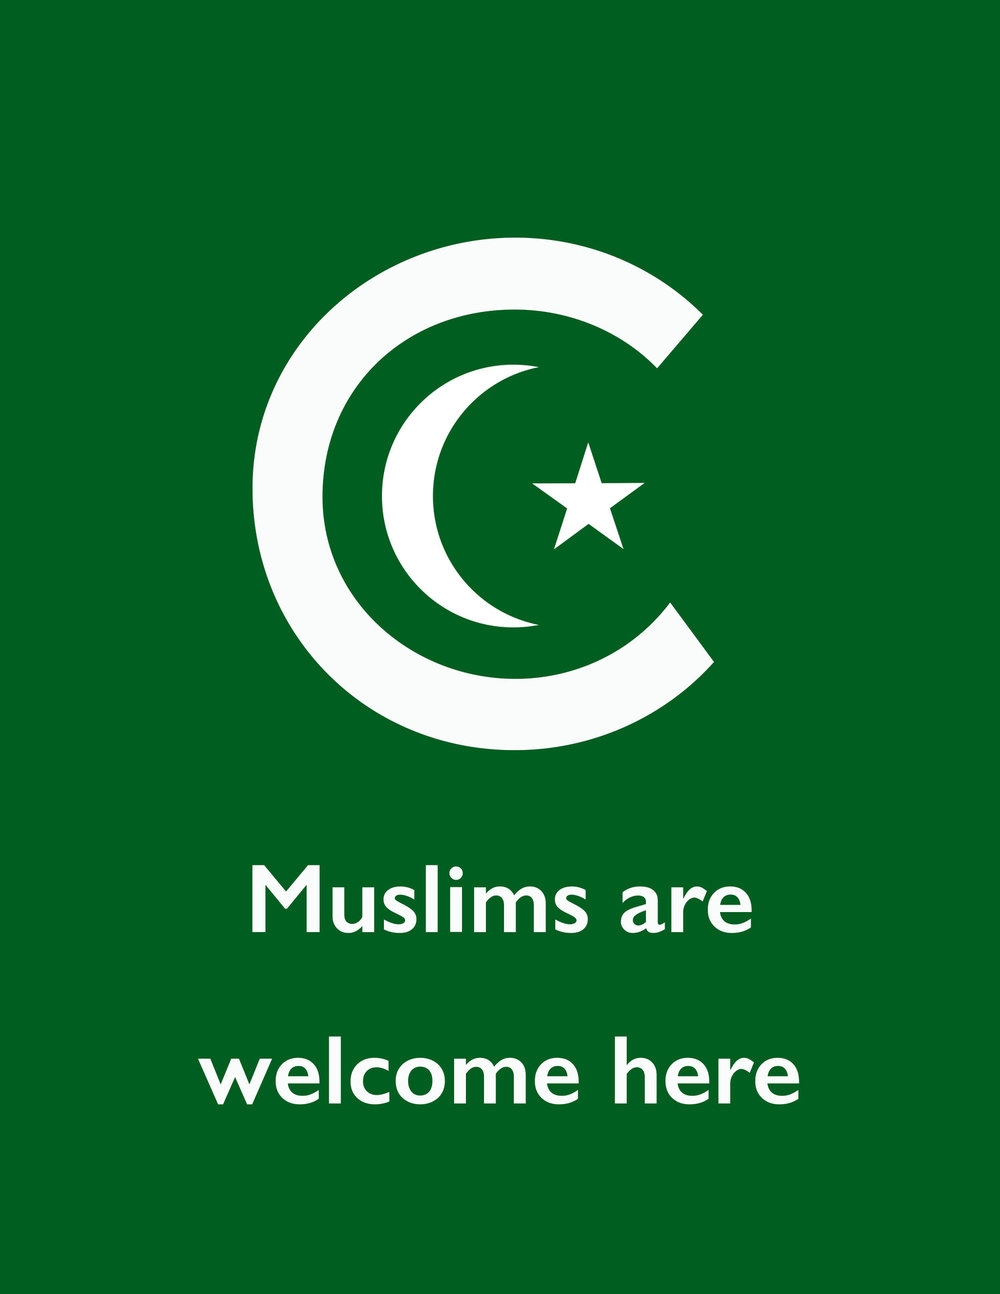 Muslims+are+welcome+here.jpg